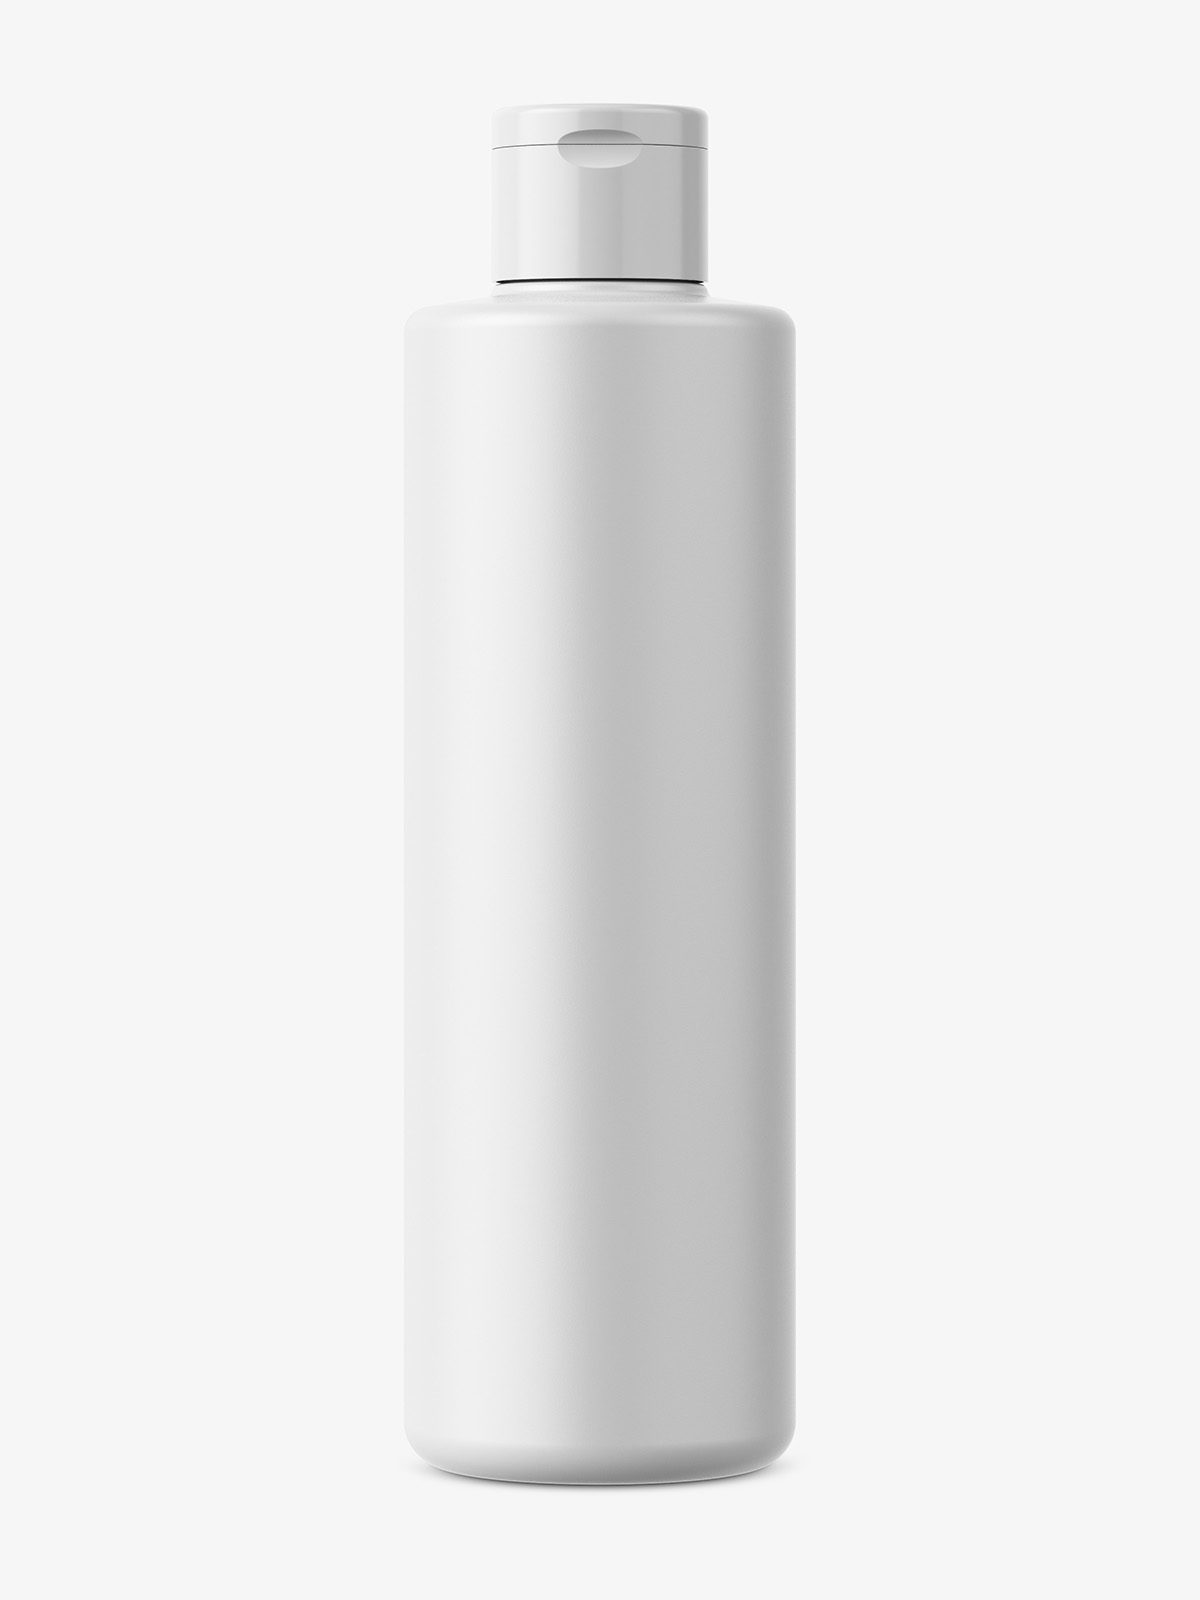 Simple Round Plastic Bottle Mockup Matt Smarty Mockups